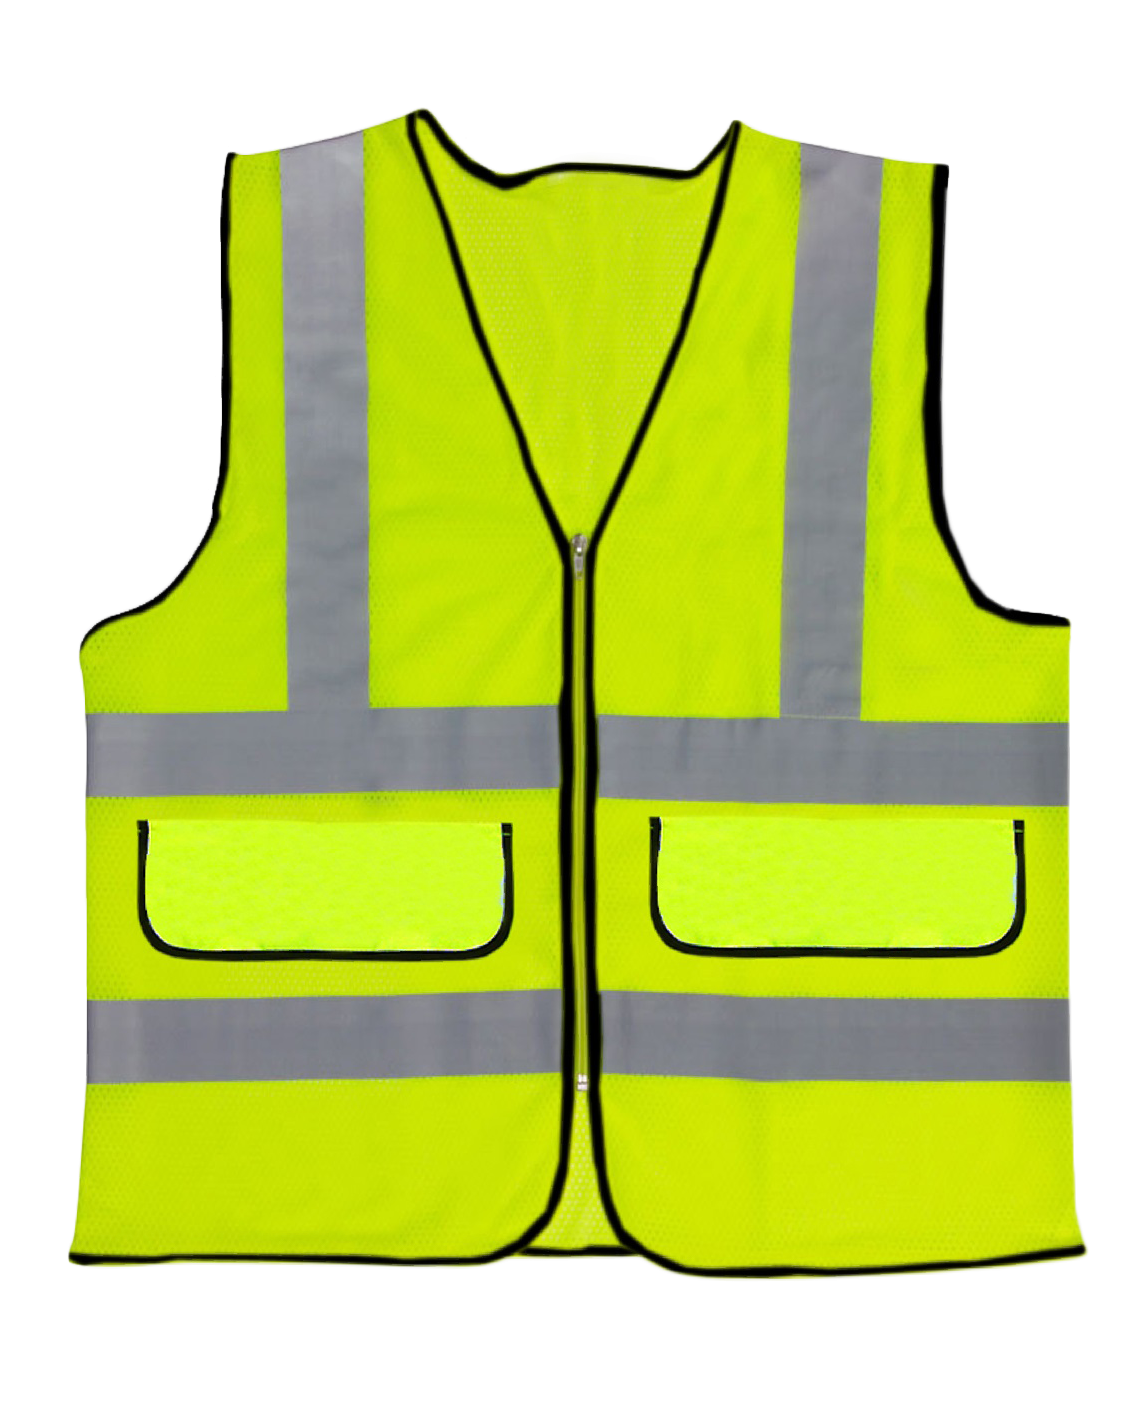 image transparent library Safety rsv rodamo versatile. Vest clipart.